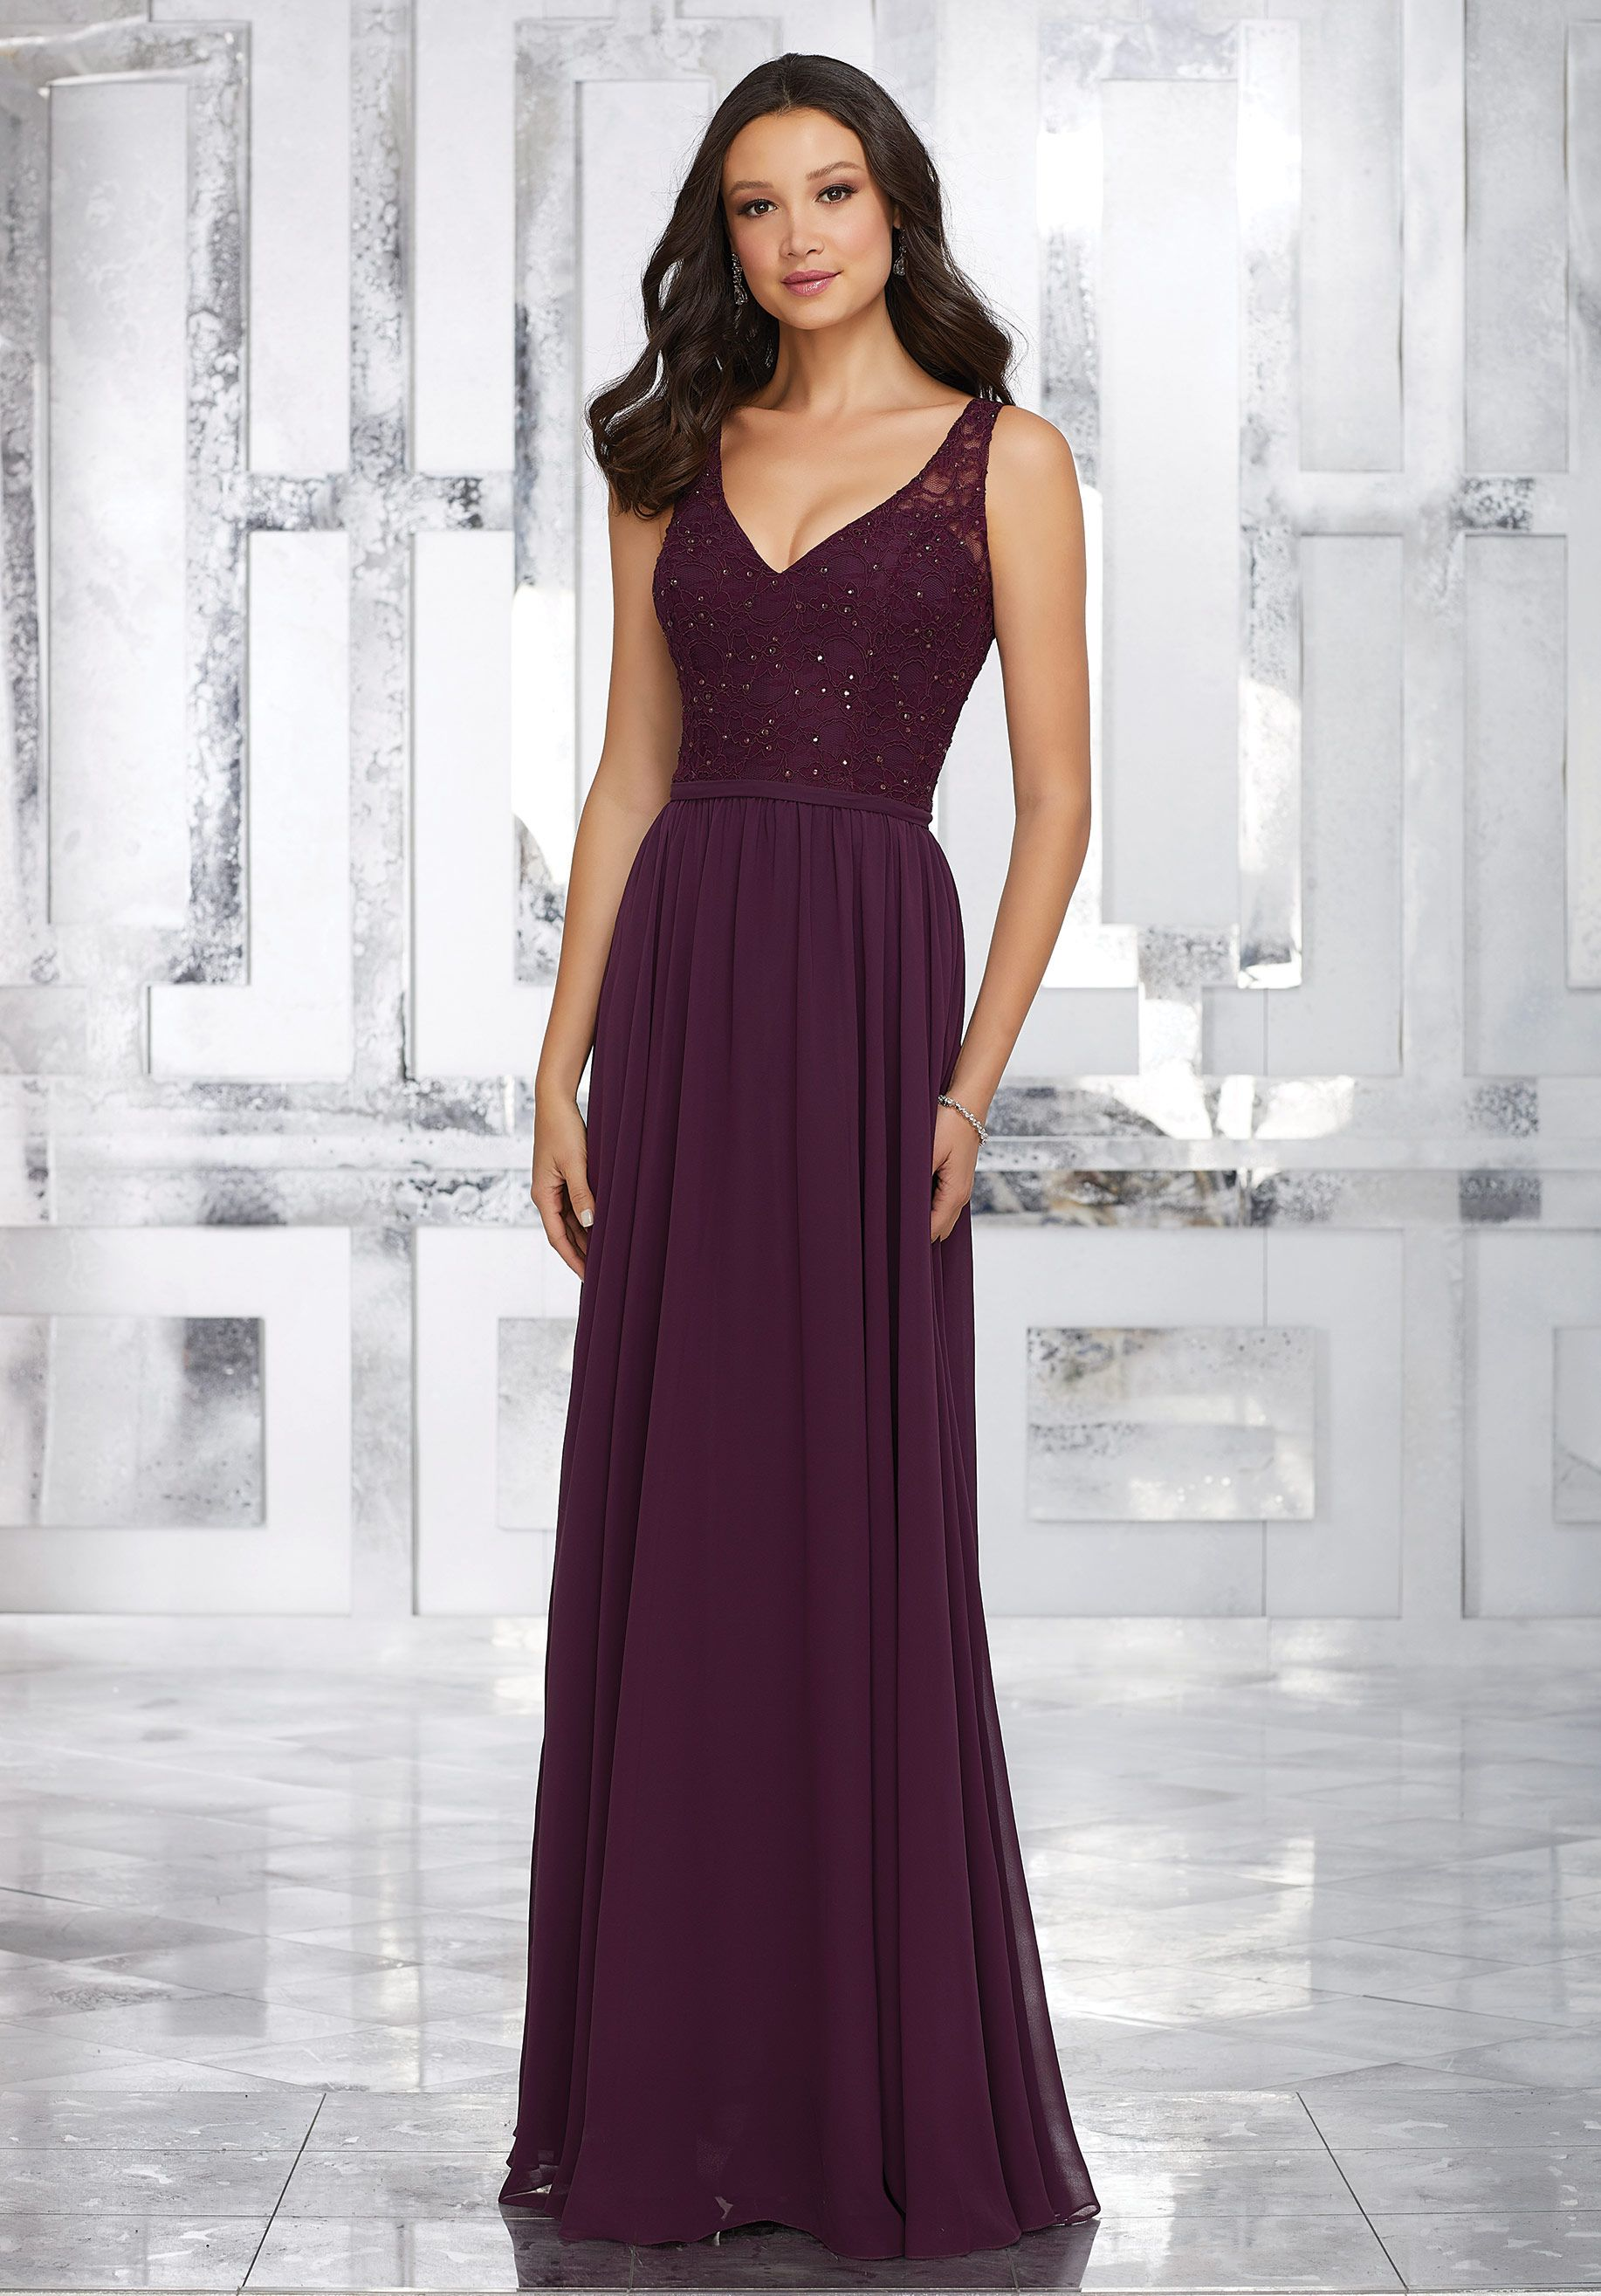 5a2e3ba633f6 Chiffon Bridesmaids Dress with Beaded Lace Bodice and Keyhole Back. View  Lace Swatch Card for Color Options.